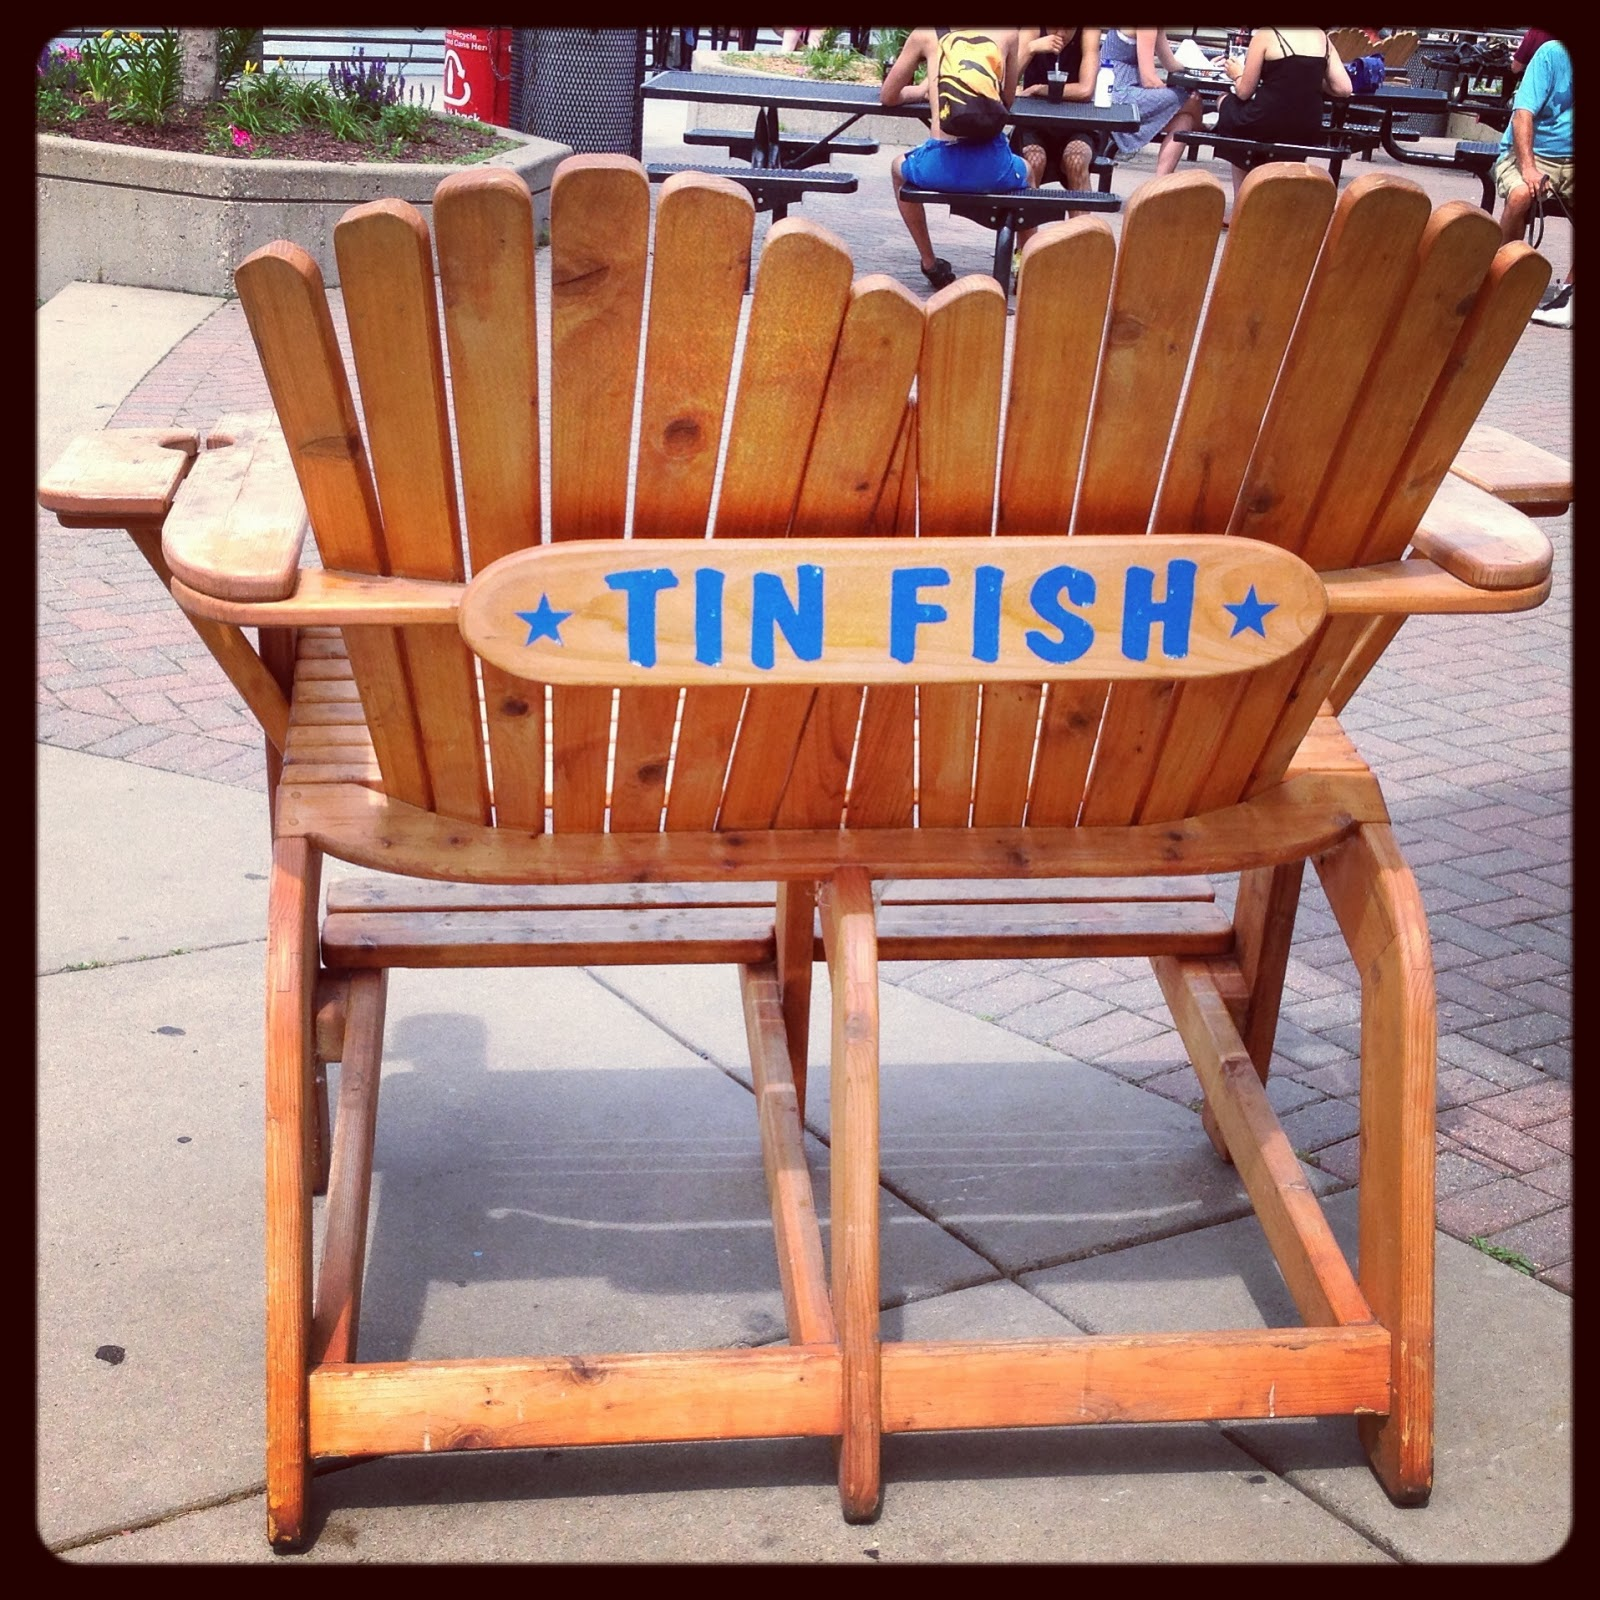 Boat shoes and button downs for Tin fish restaurant